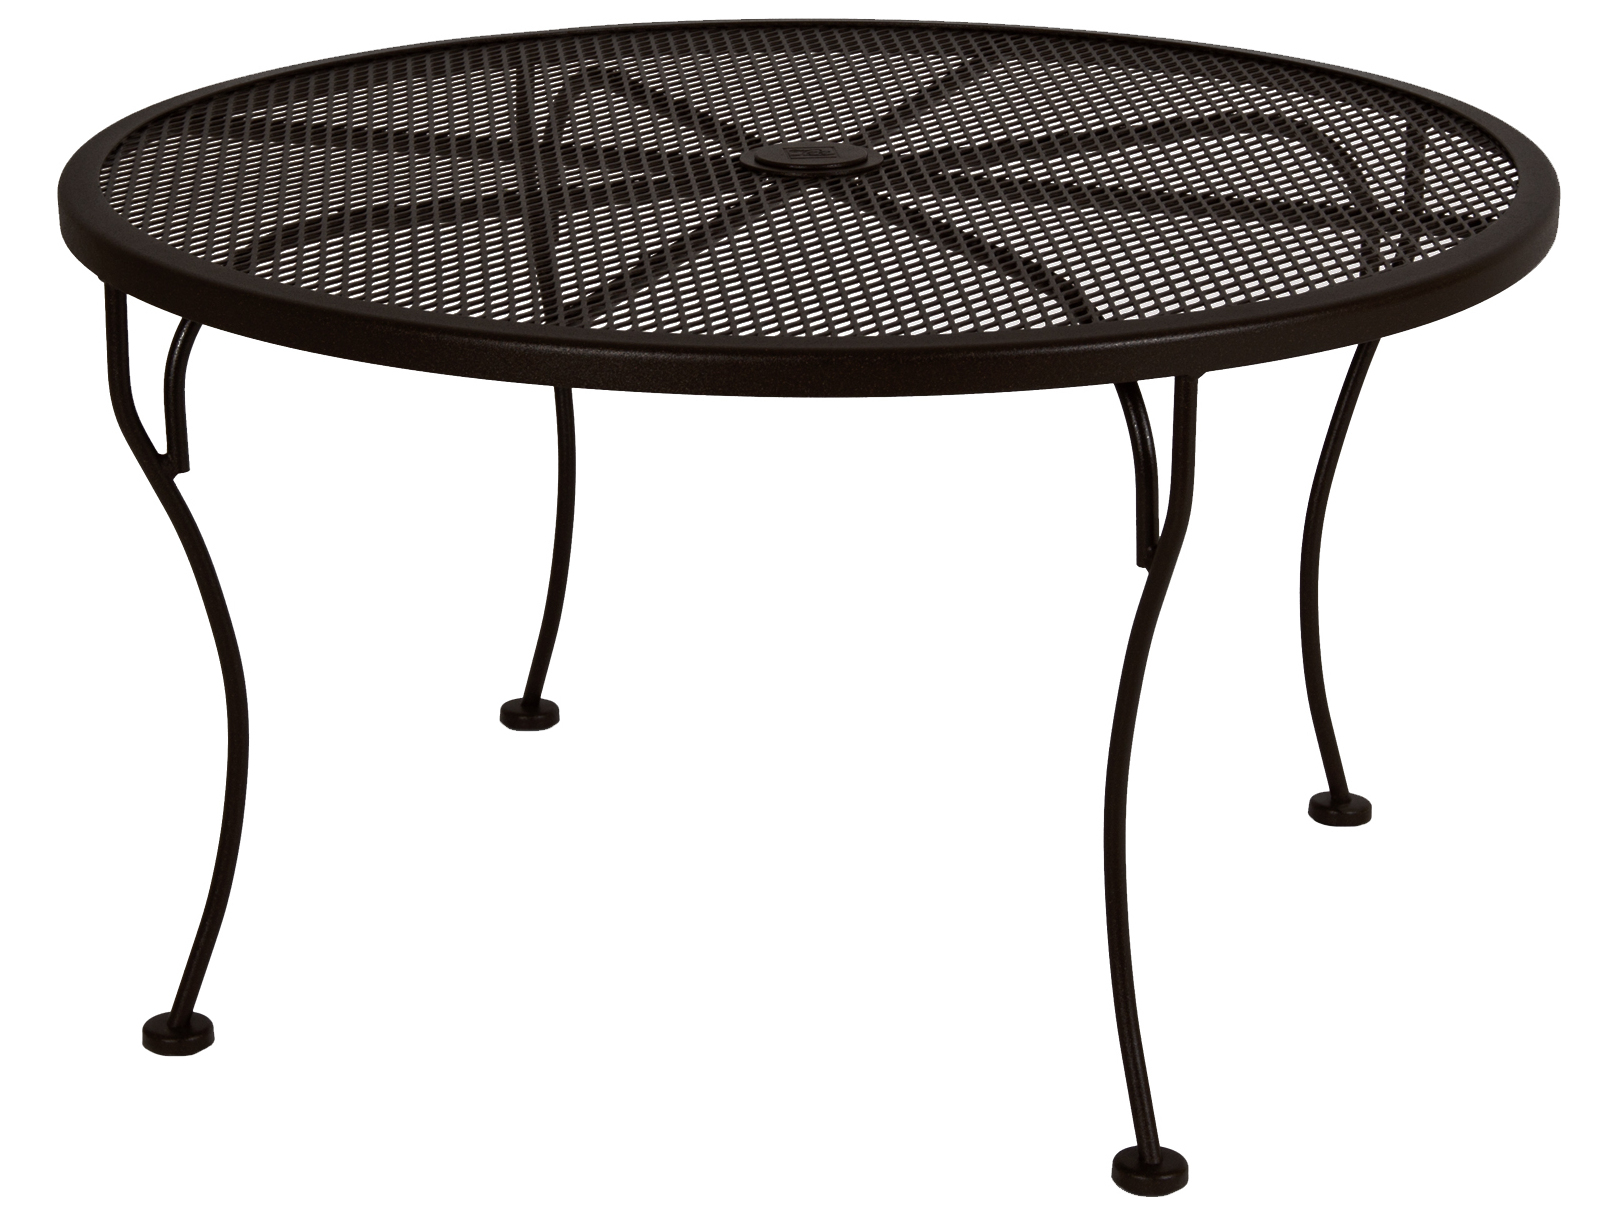 Ow Lee Micro Mesh Wrought Iron 36 Round Side Table With